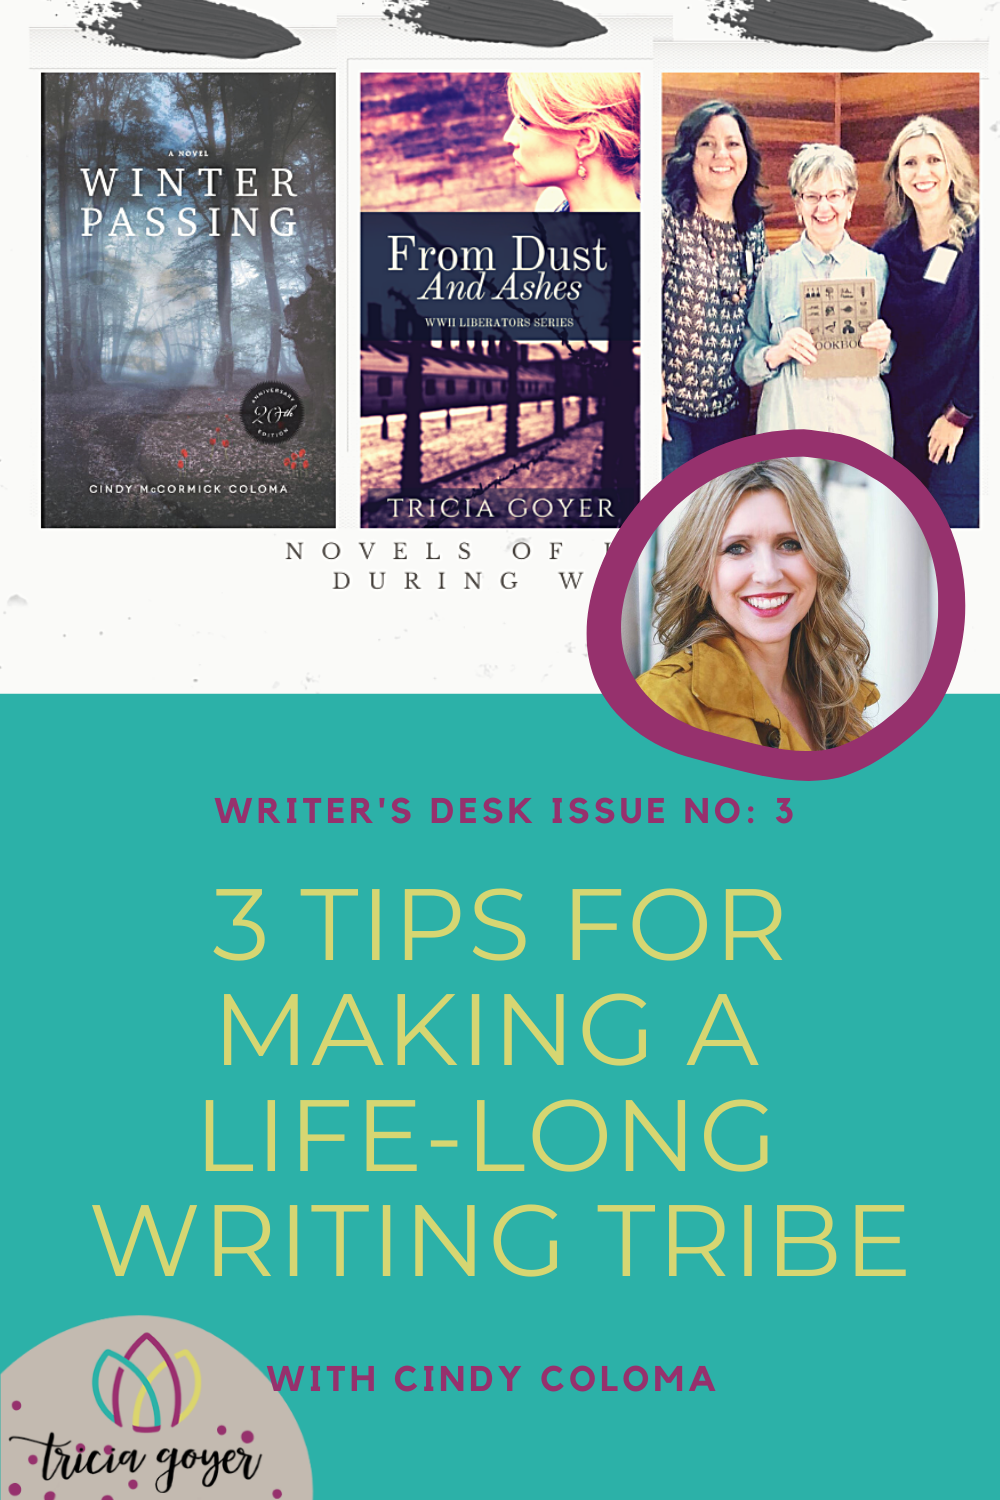 Writer's Desk: Cindy Coloma. Cindy shares her 3 tips for building a long-term writing tribe! Enjoy!